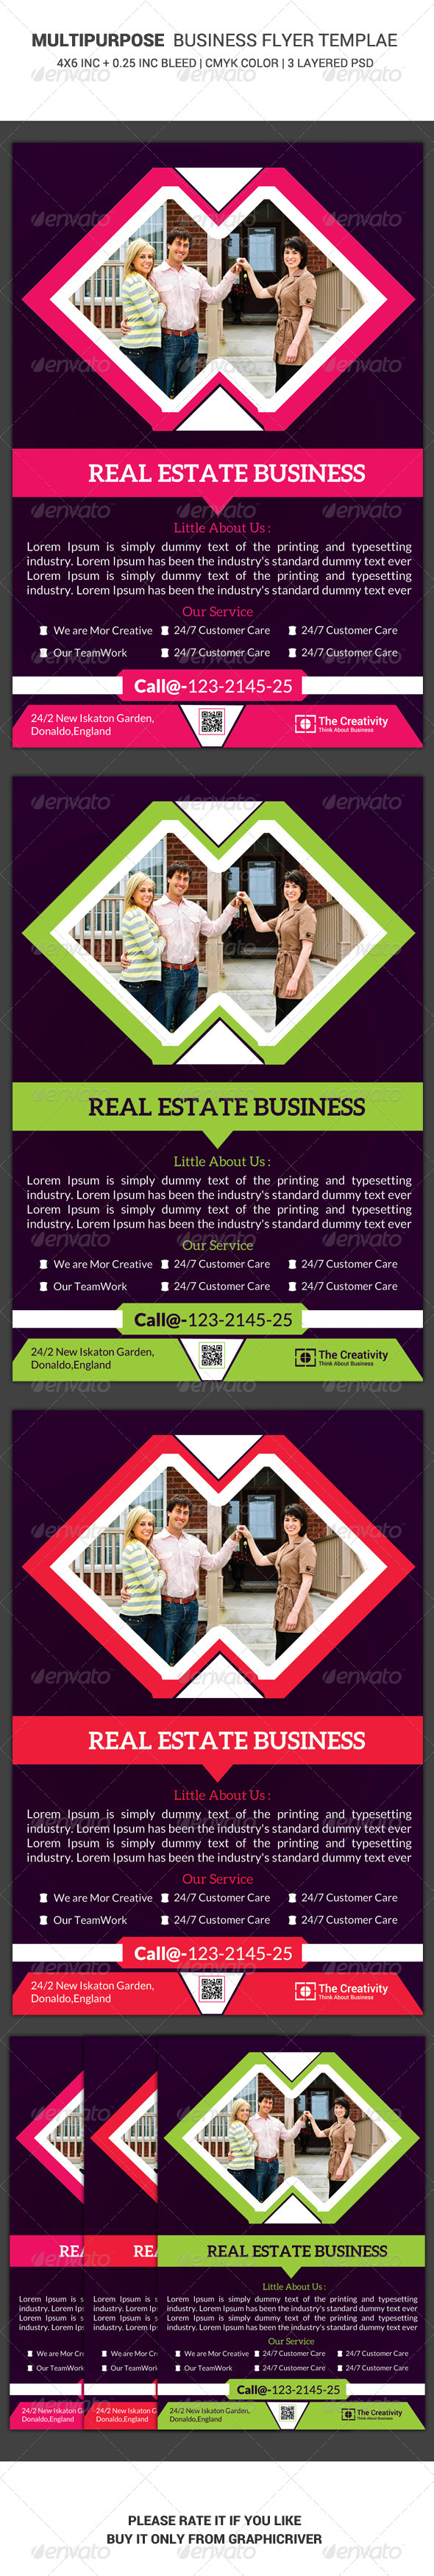 Real Estate Business Flyer Template 2